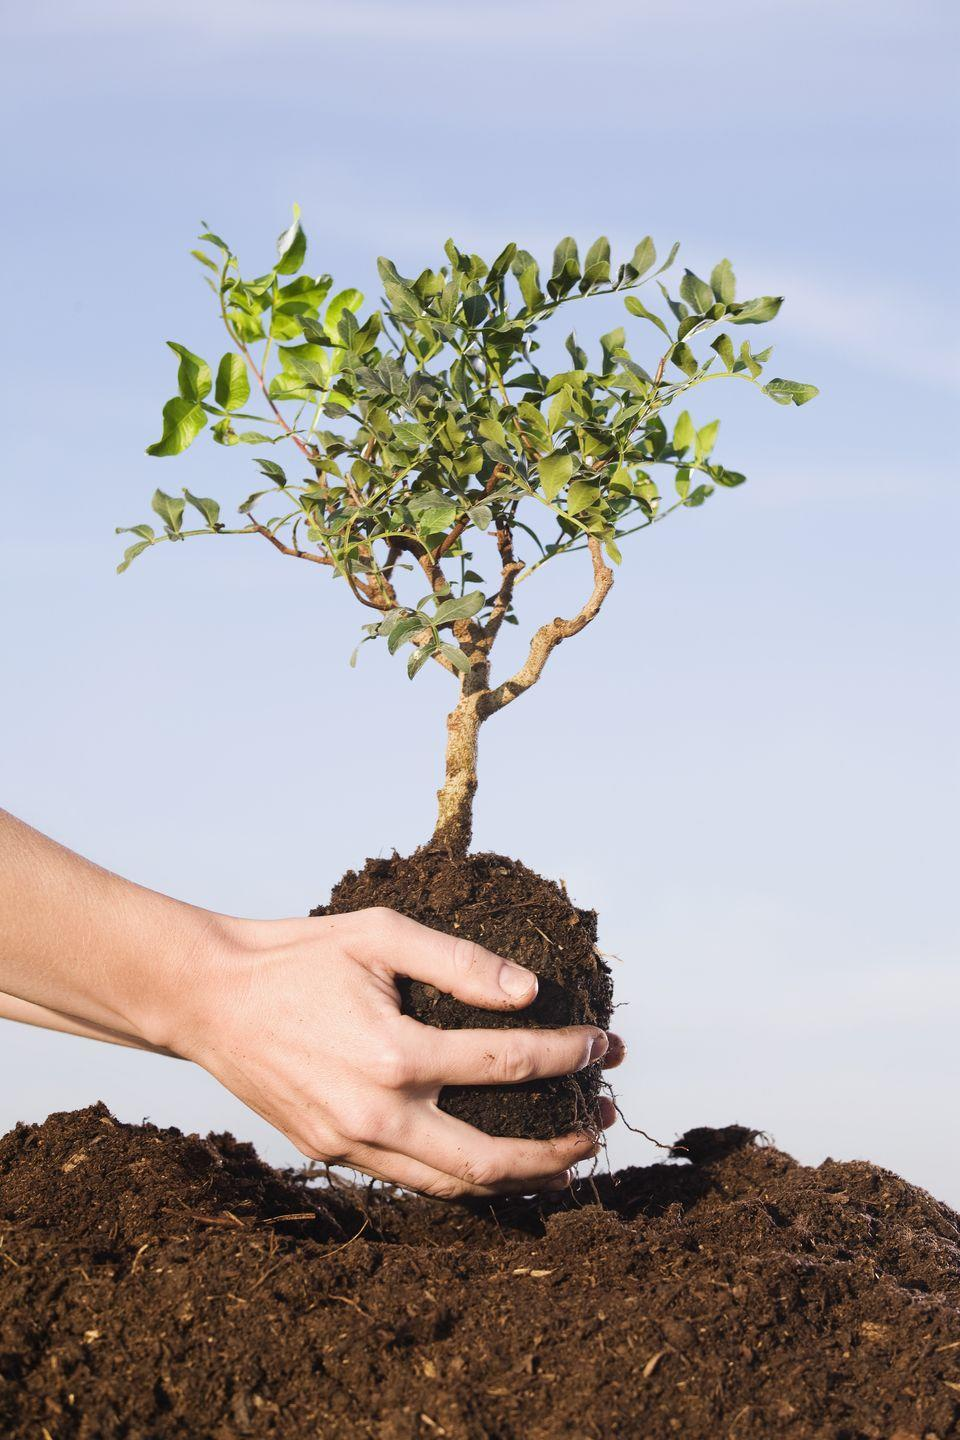 "<p>Perhaps the most obvious of the bunch, but what better way to care for the Earth than to replenish it. Billions of trees are cut down every year to create the things that we use every day. Why not give one back?</p><p><strong>RELATED:</strong> <a href=""https://www.goodhousekeeping.com/home/gardening/g26426369/trees-for-small-yards/"" rel=""nofollow noopener"" target=""_blank"" data-ylk=""slk:9 of the Best Trees for Small Yards"" class=""link rapid-noclick-resp"">9 of the Best Trees for Small Yards</a></p>"